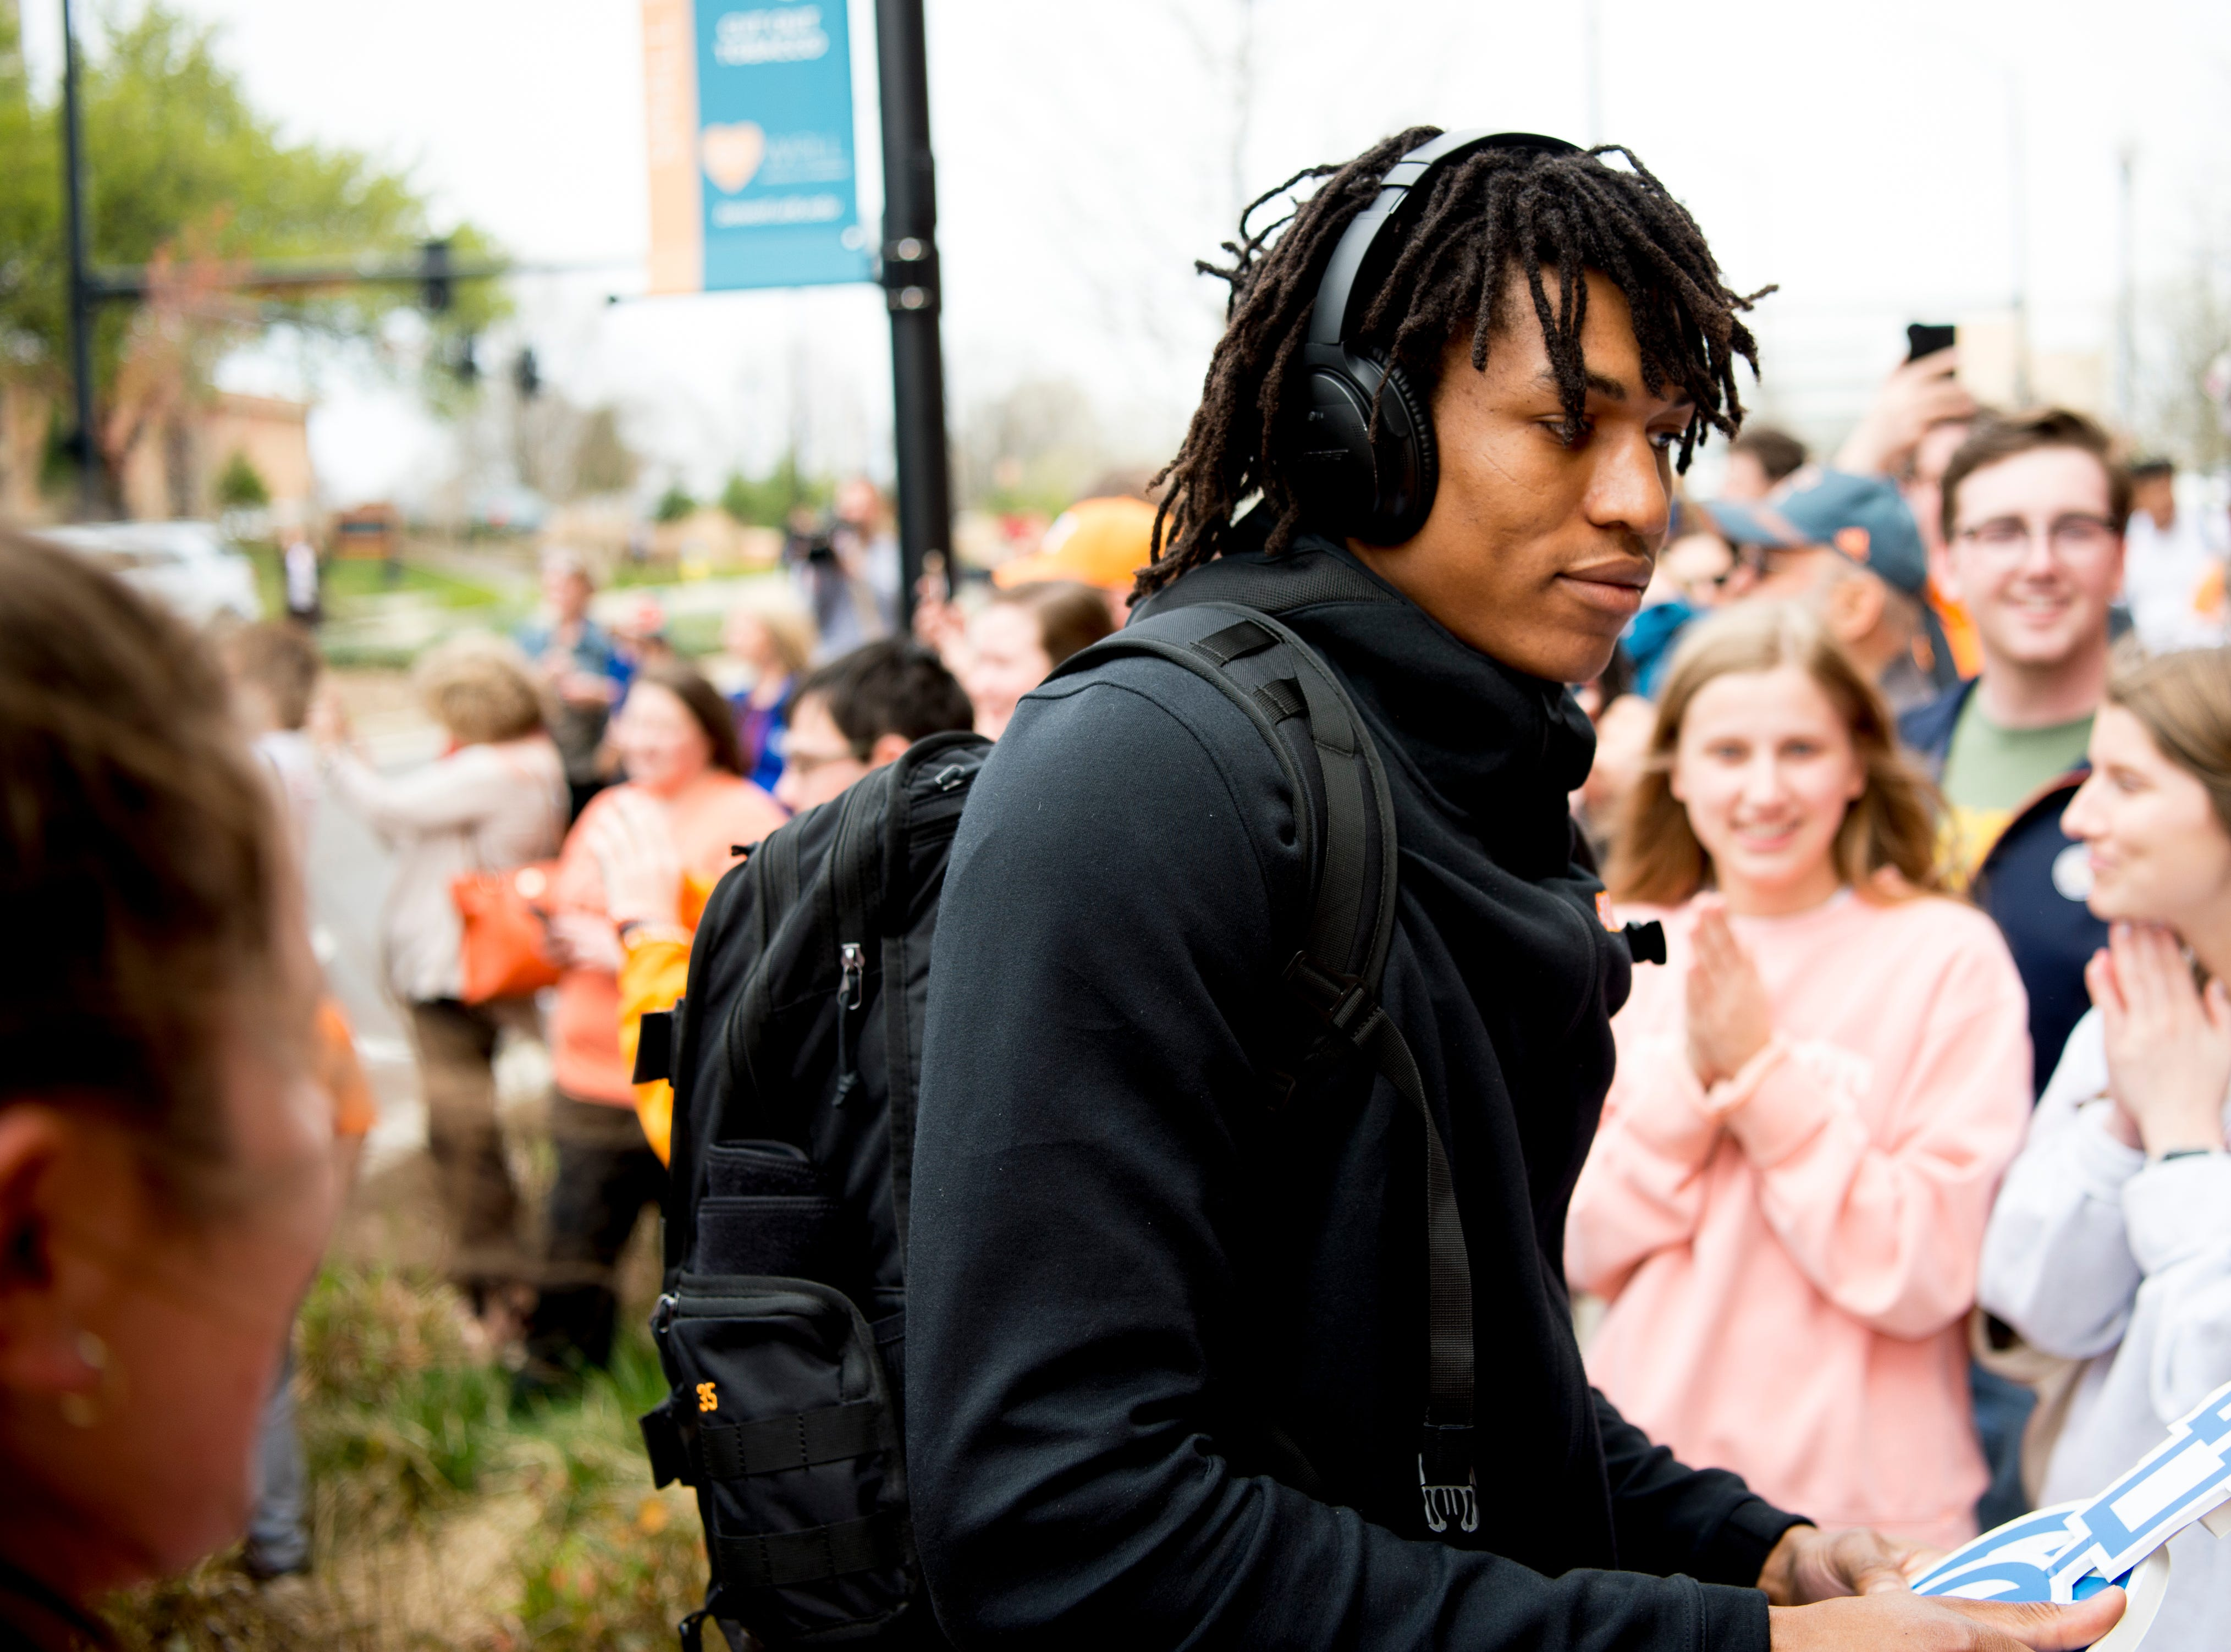 Tennessee guard/forward Yves Pons (35) greets fans upon returning to Stokley Hall in Knoxville, Tennessee on Friday, March 29, 2019. The Vols fell to Purdue Thursday night during the Sweet 16 of the NCAA tournament.